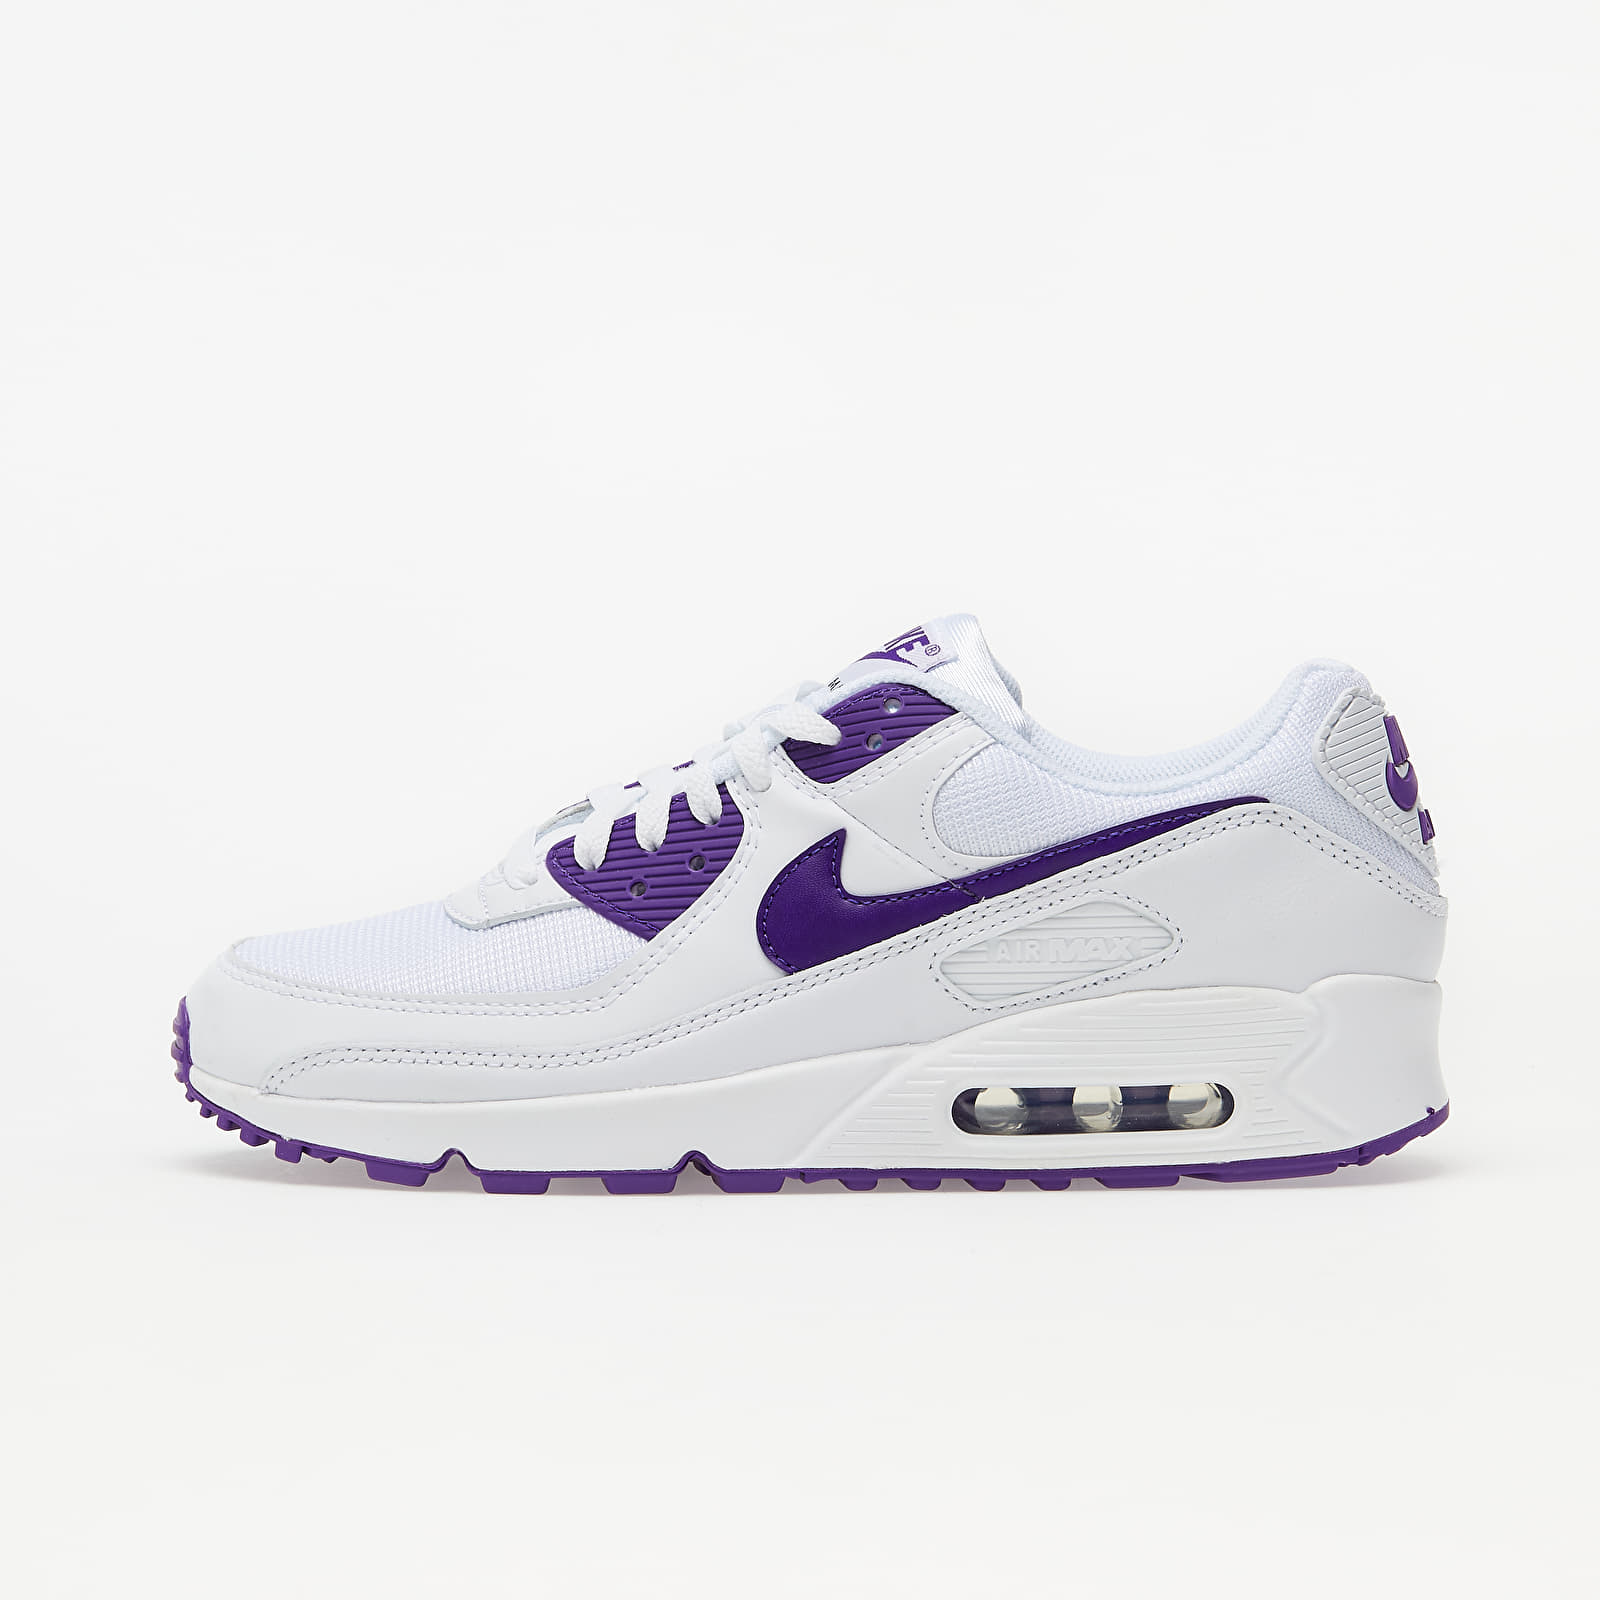 Nike Air Max 90 White/ Voltage Purple-Black EUR 42